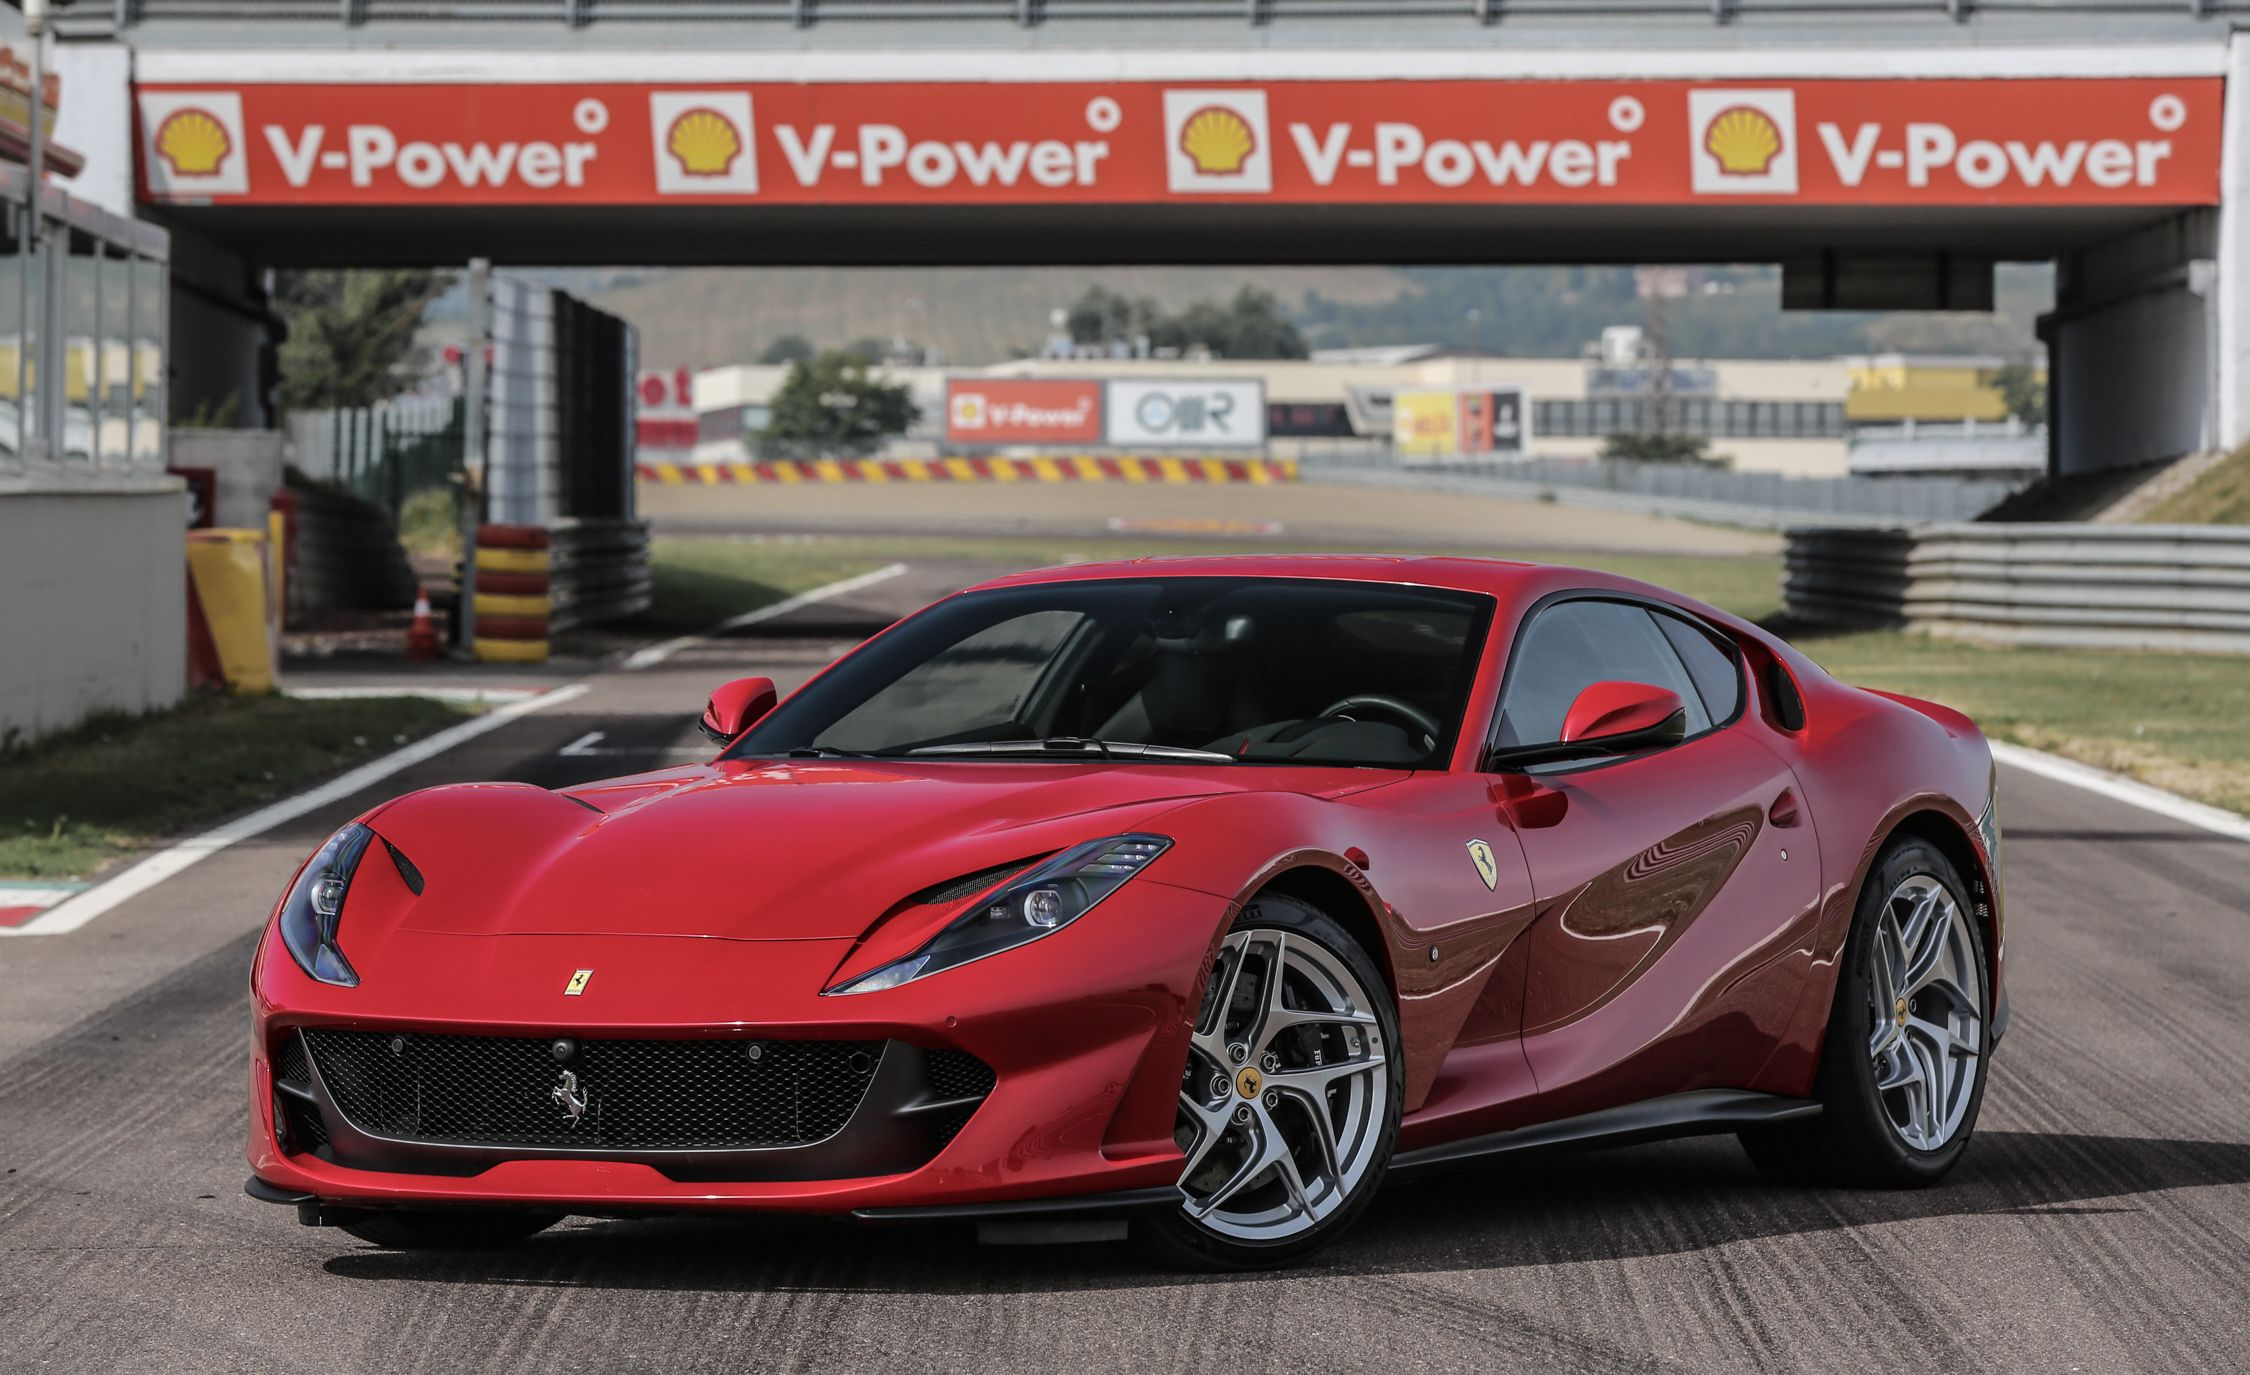 Ferrari 812 Superfast Reviews | Ferrari 812 Superfast Price, Photos, And  Specs | Car And Driver